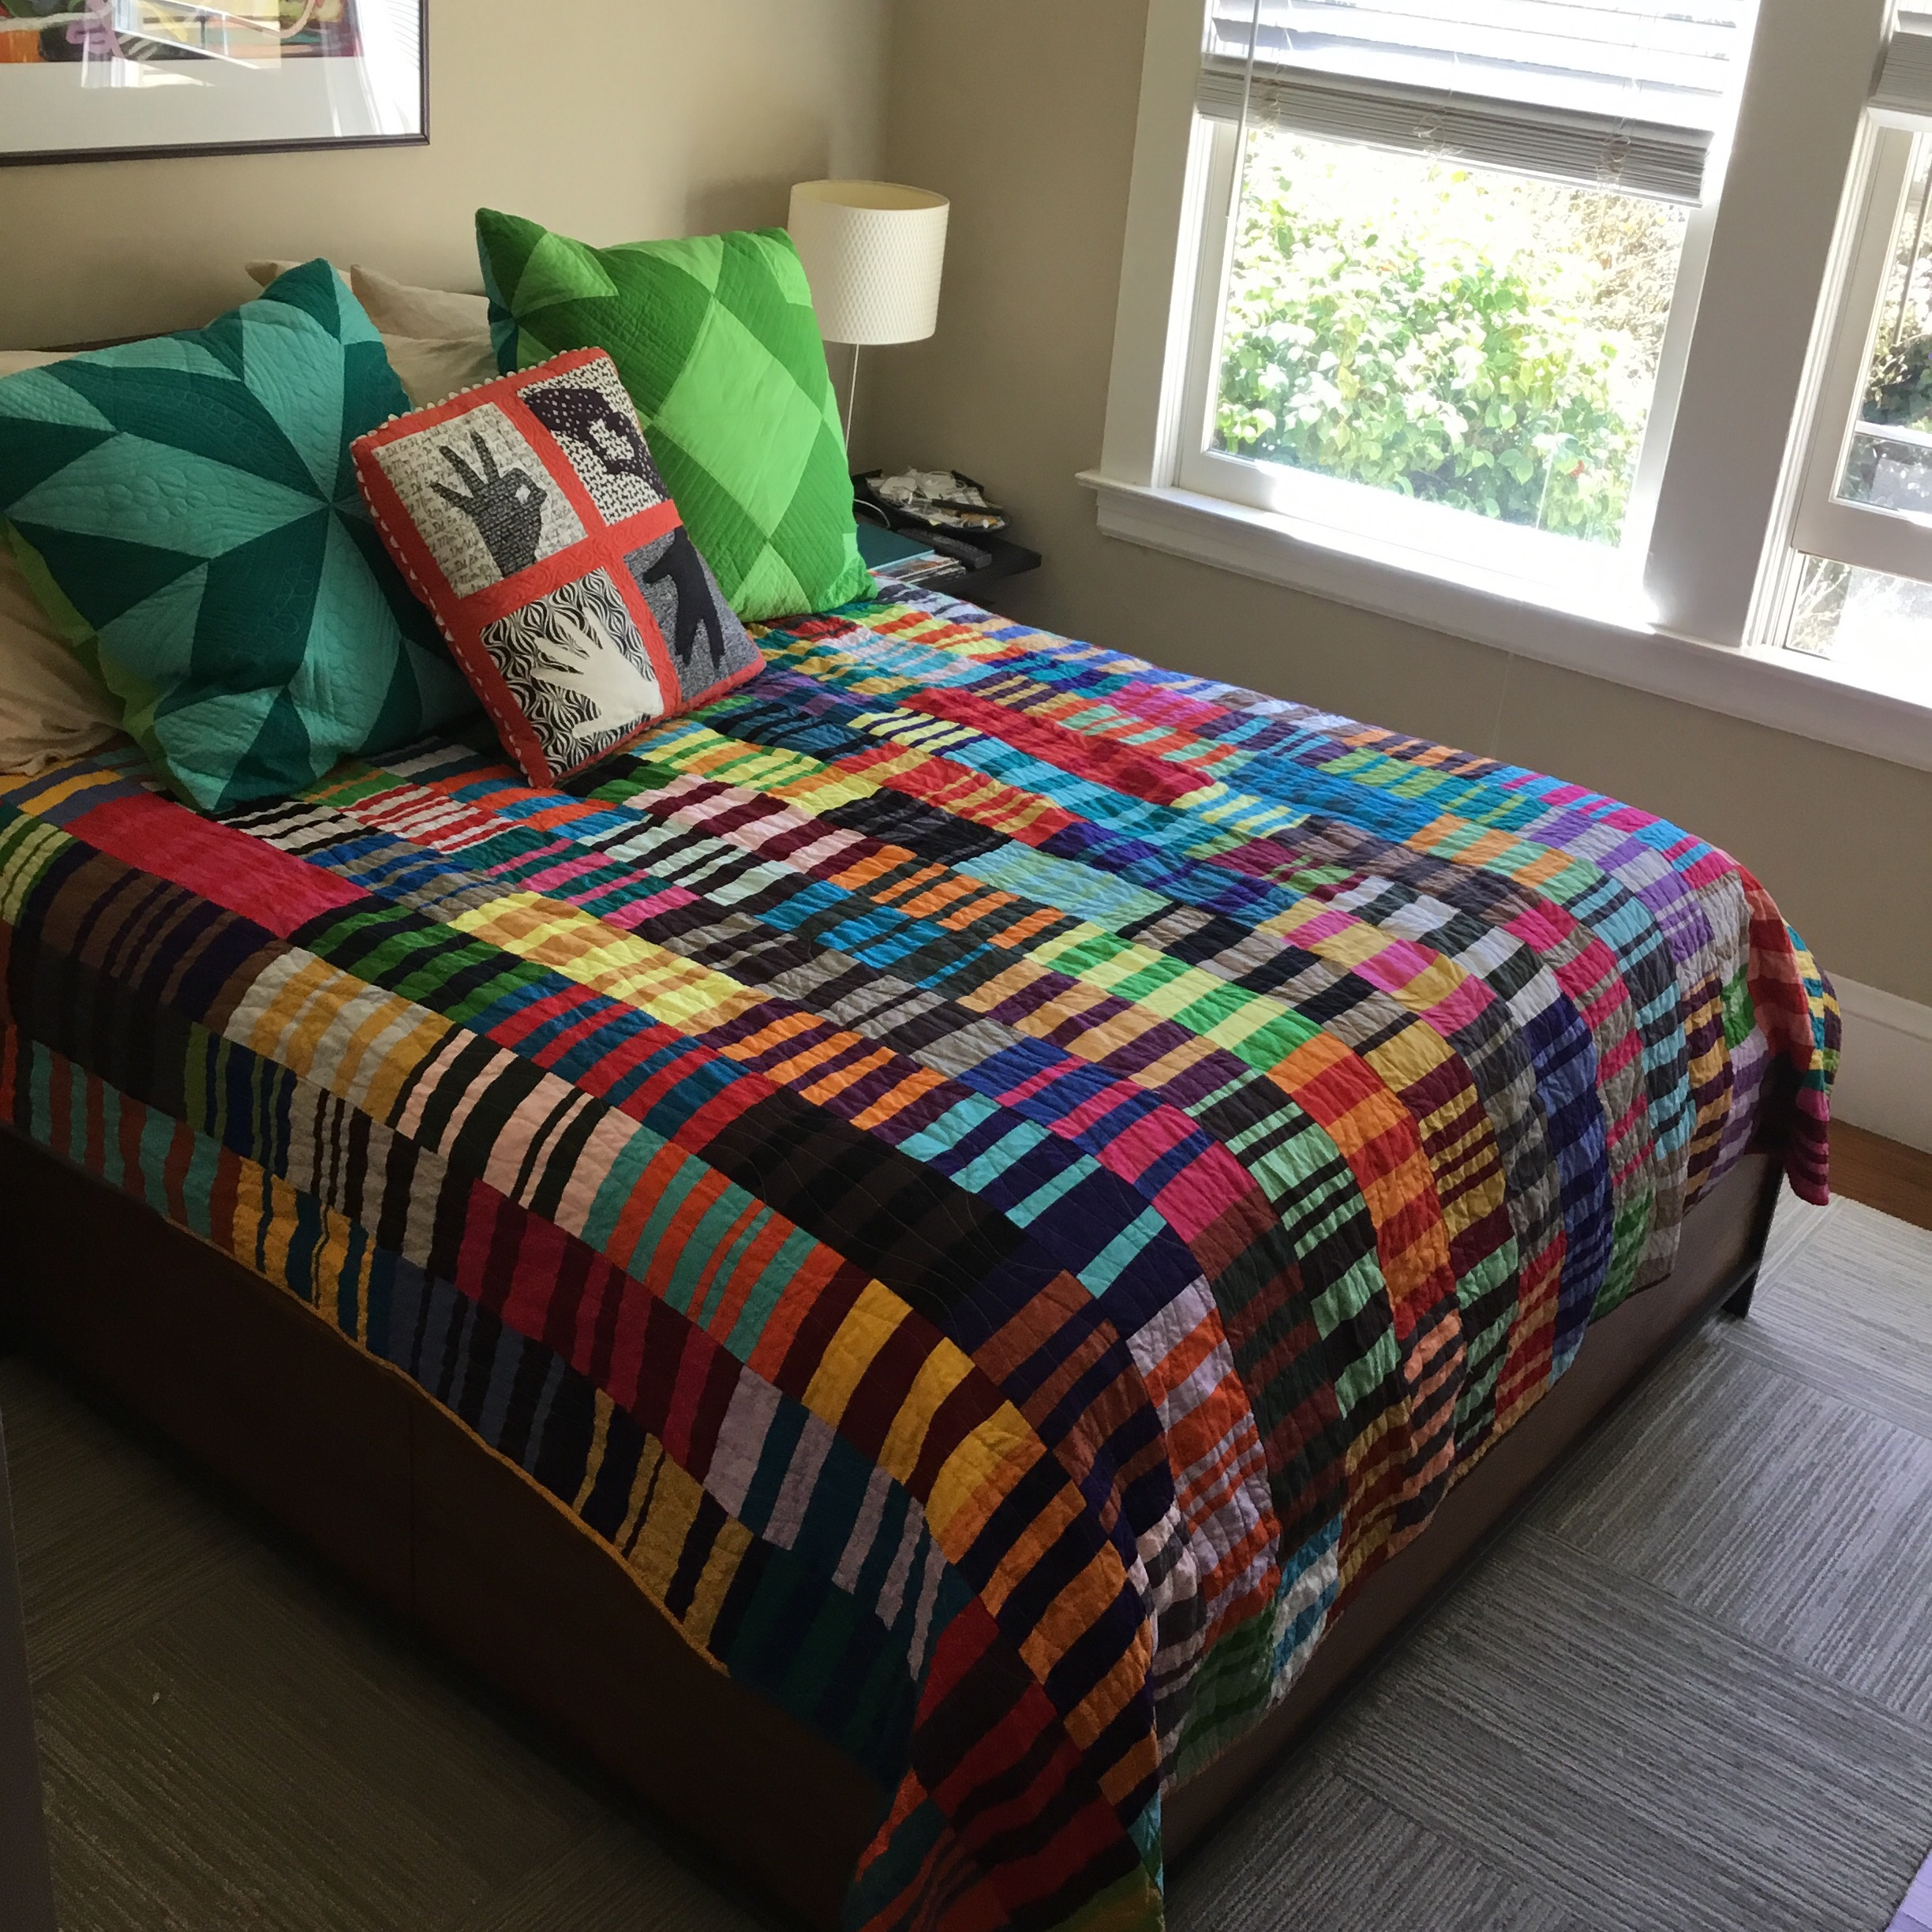 New Bed Quilt for us!